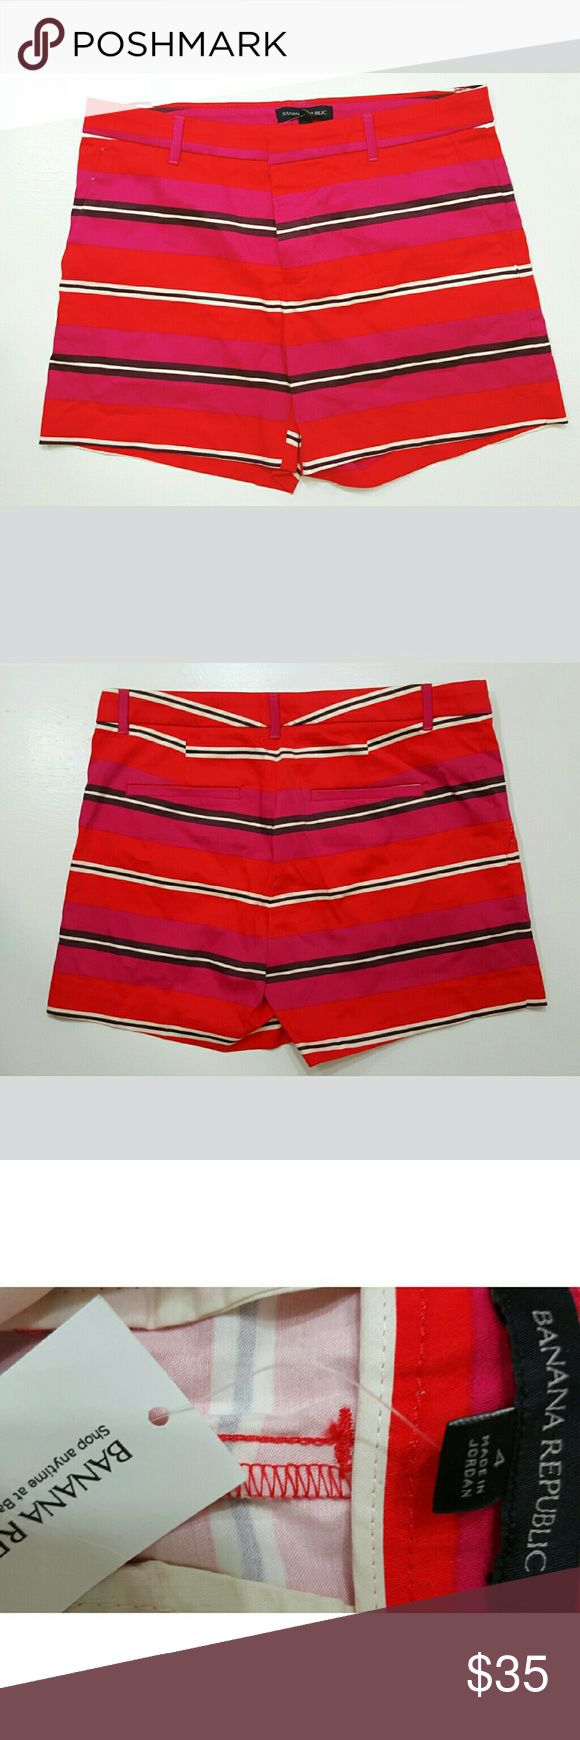 Banana Republic Striped Shorts  NWT Size 4 Red, pink, black and white striped shorts with hidden button and front zip closure.   New with tags! Banana Republic Shorts